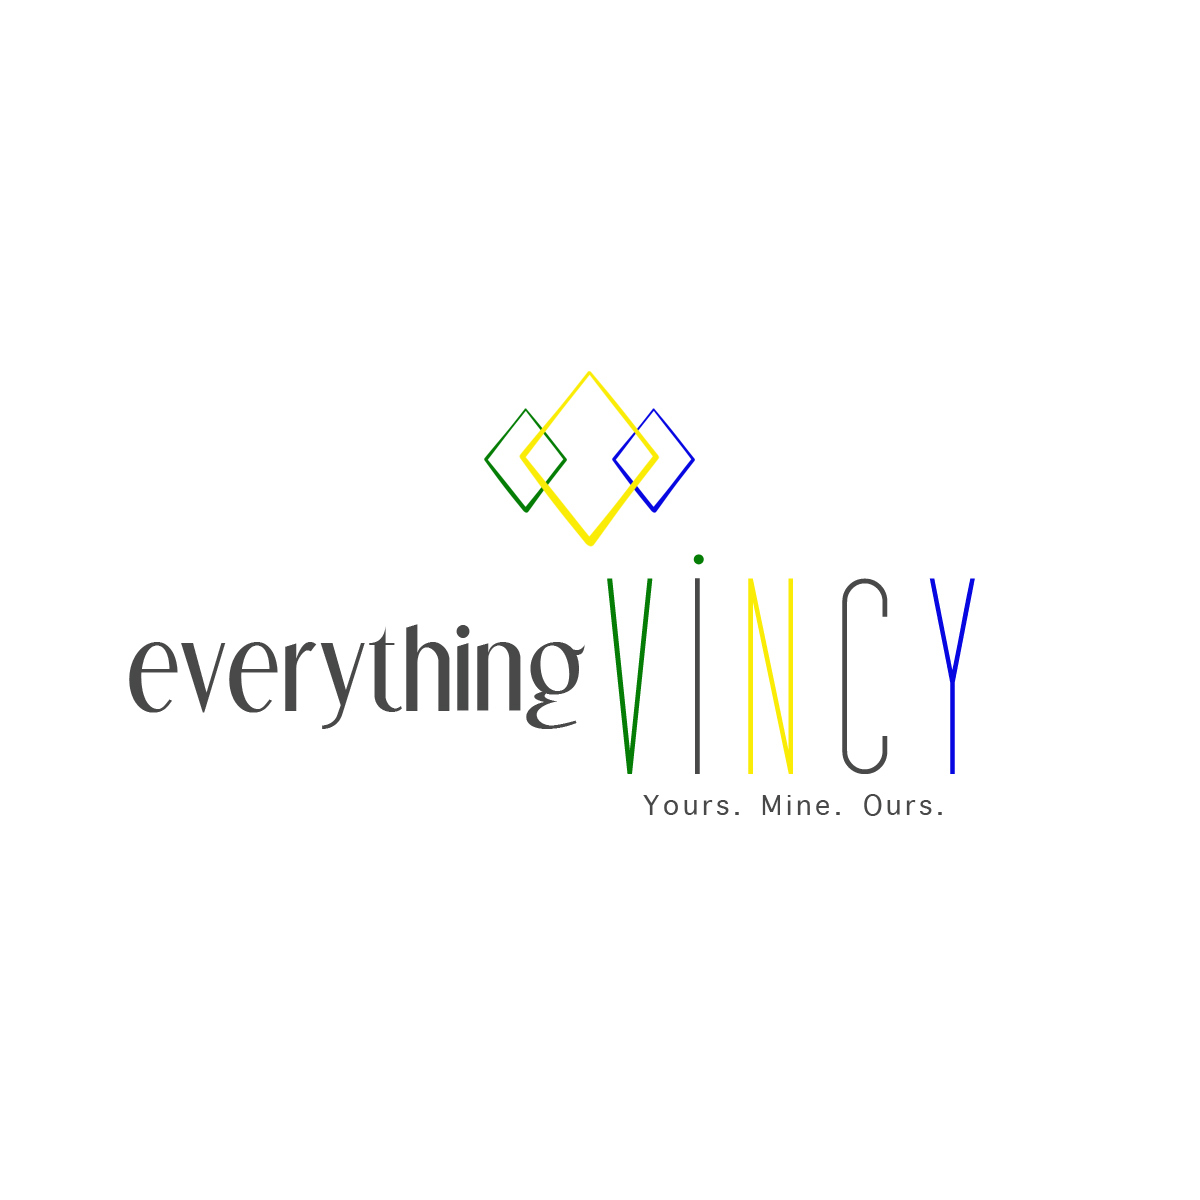 everythingvincy 2017